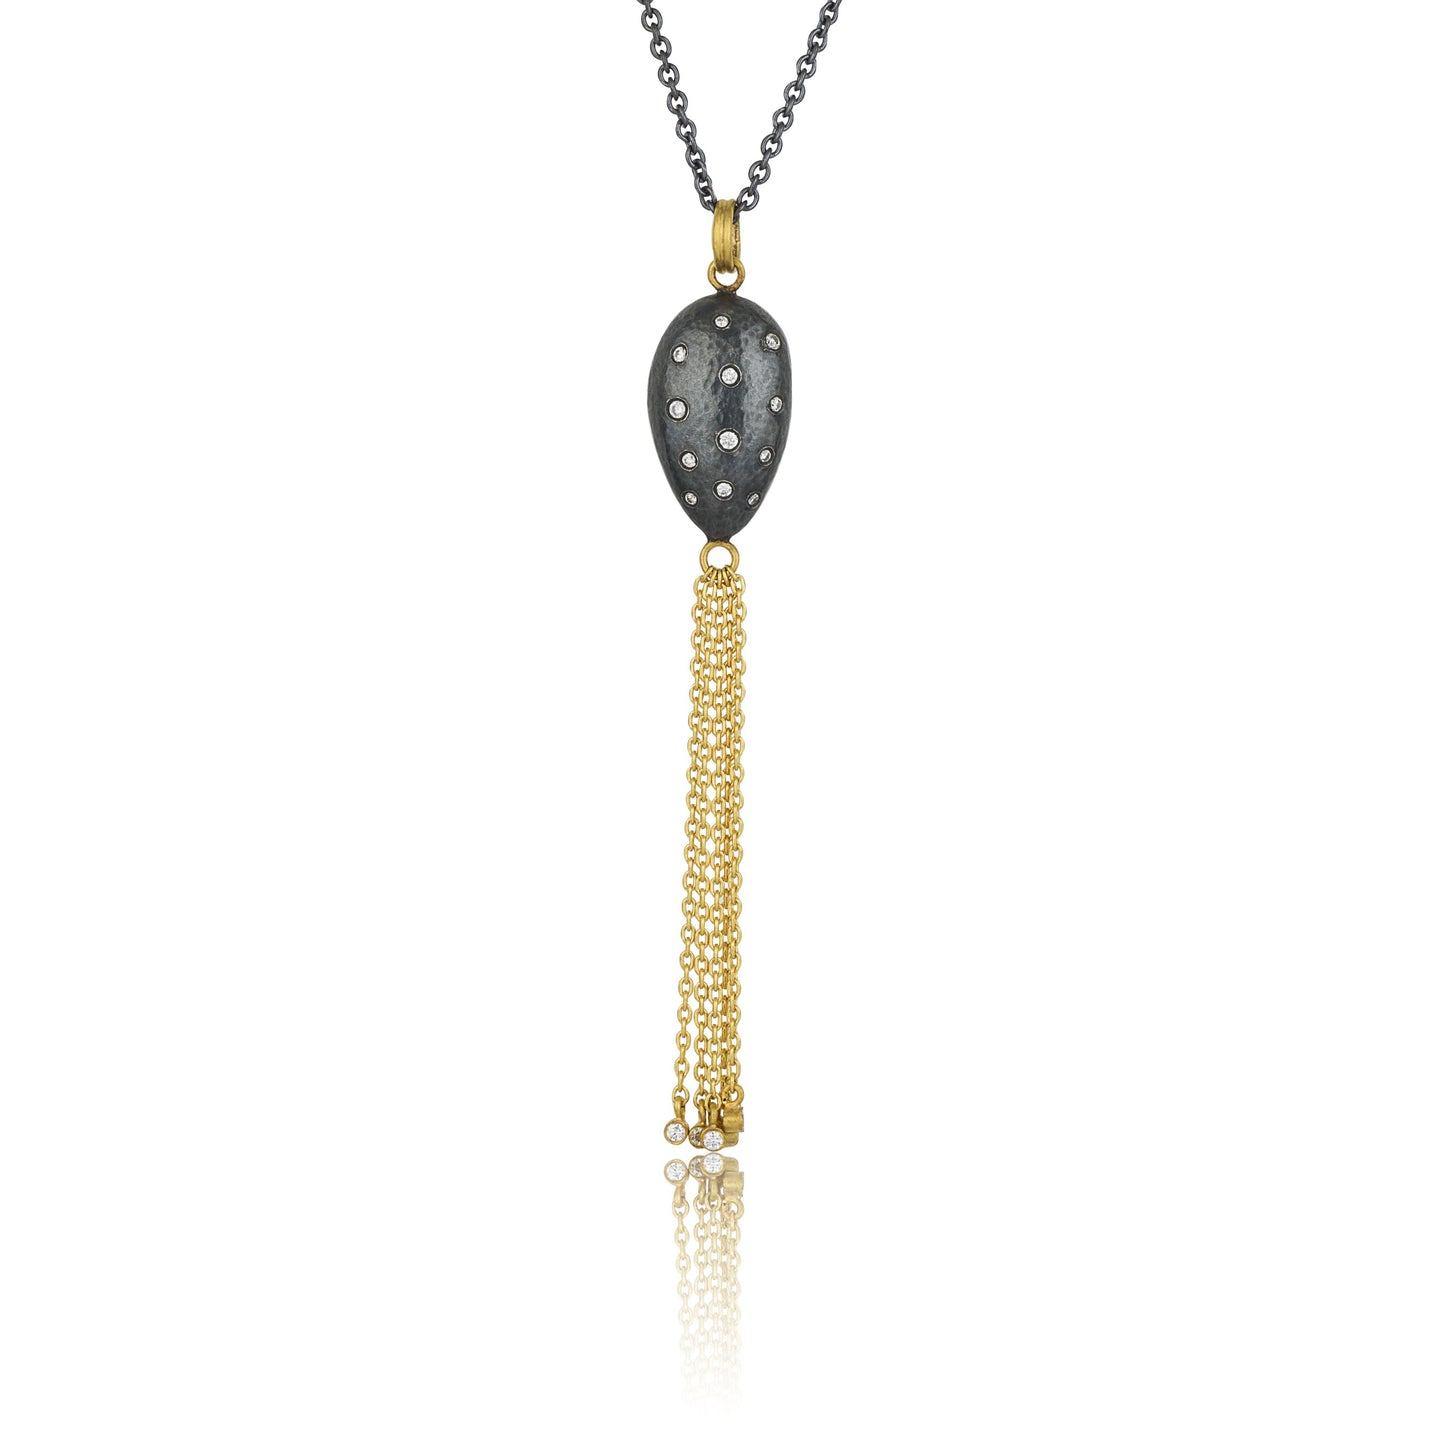 Lika Behar Almond Pendant with Diamond and Chain Accents